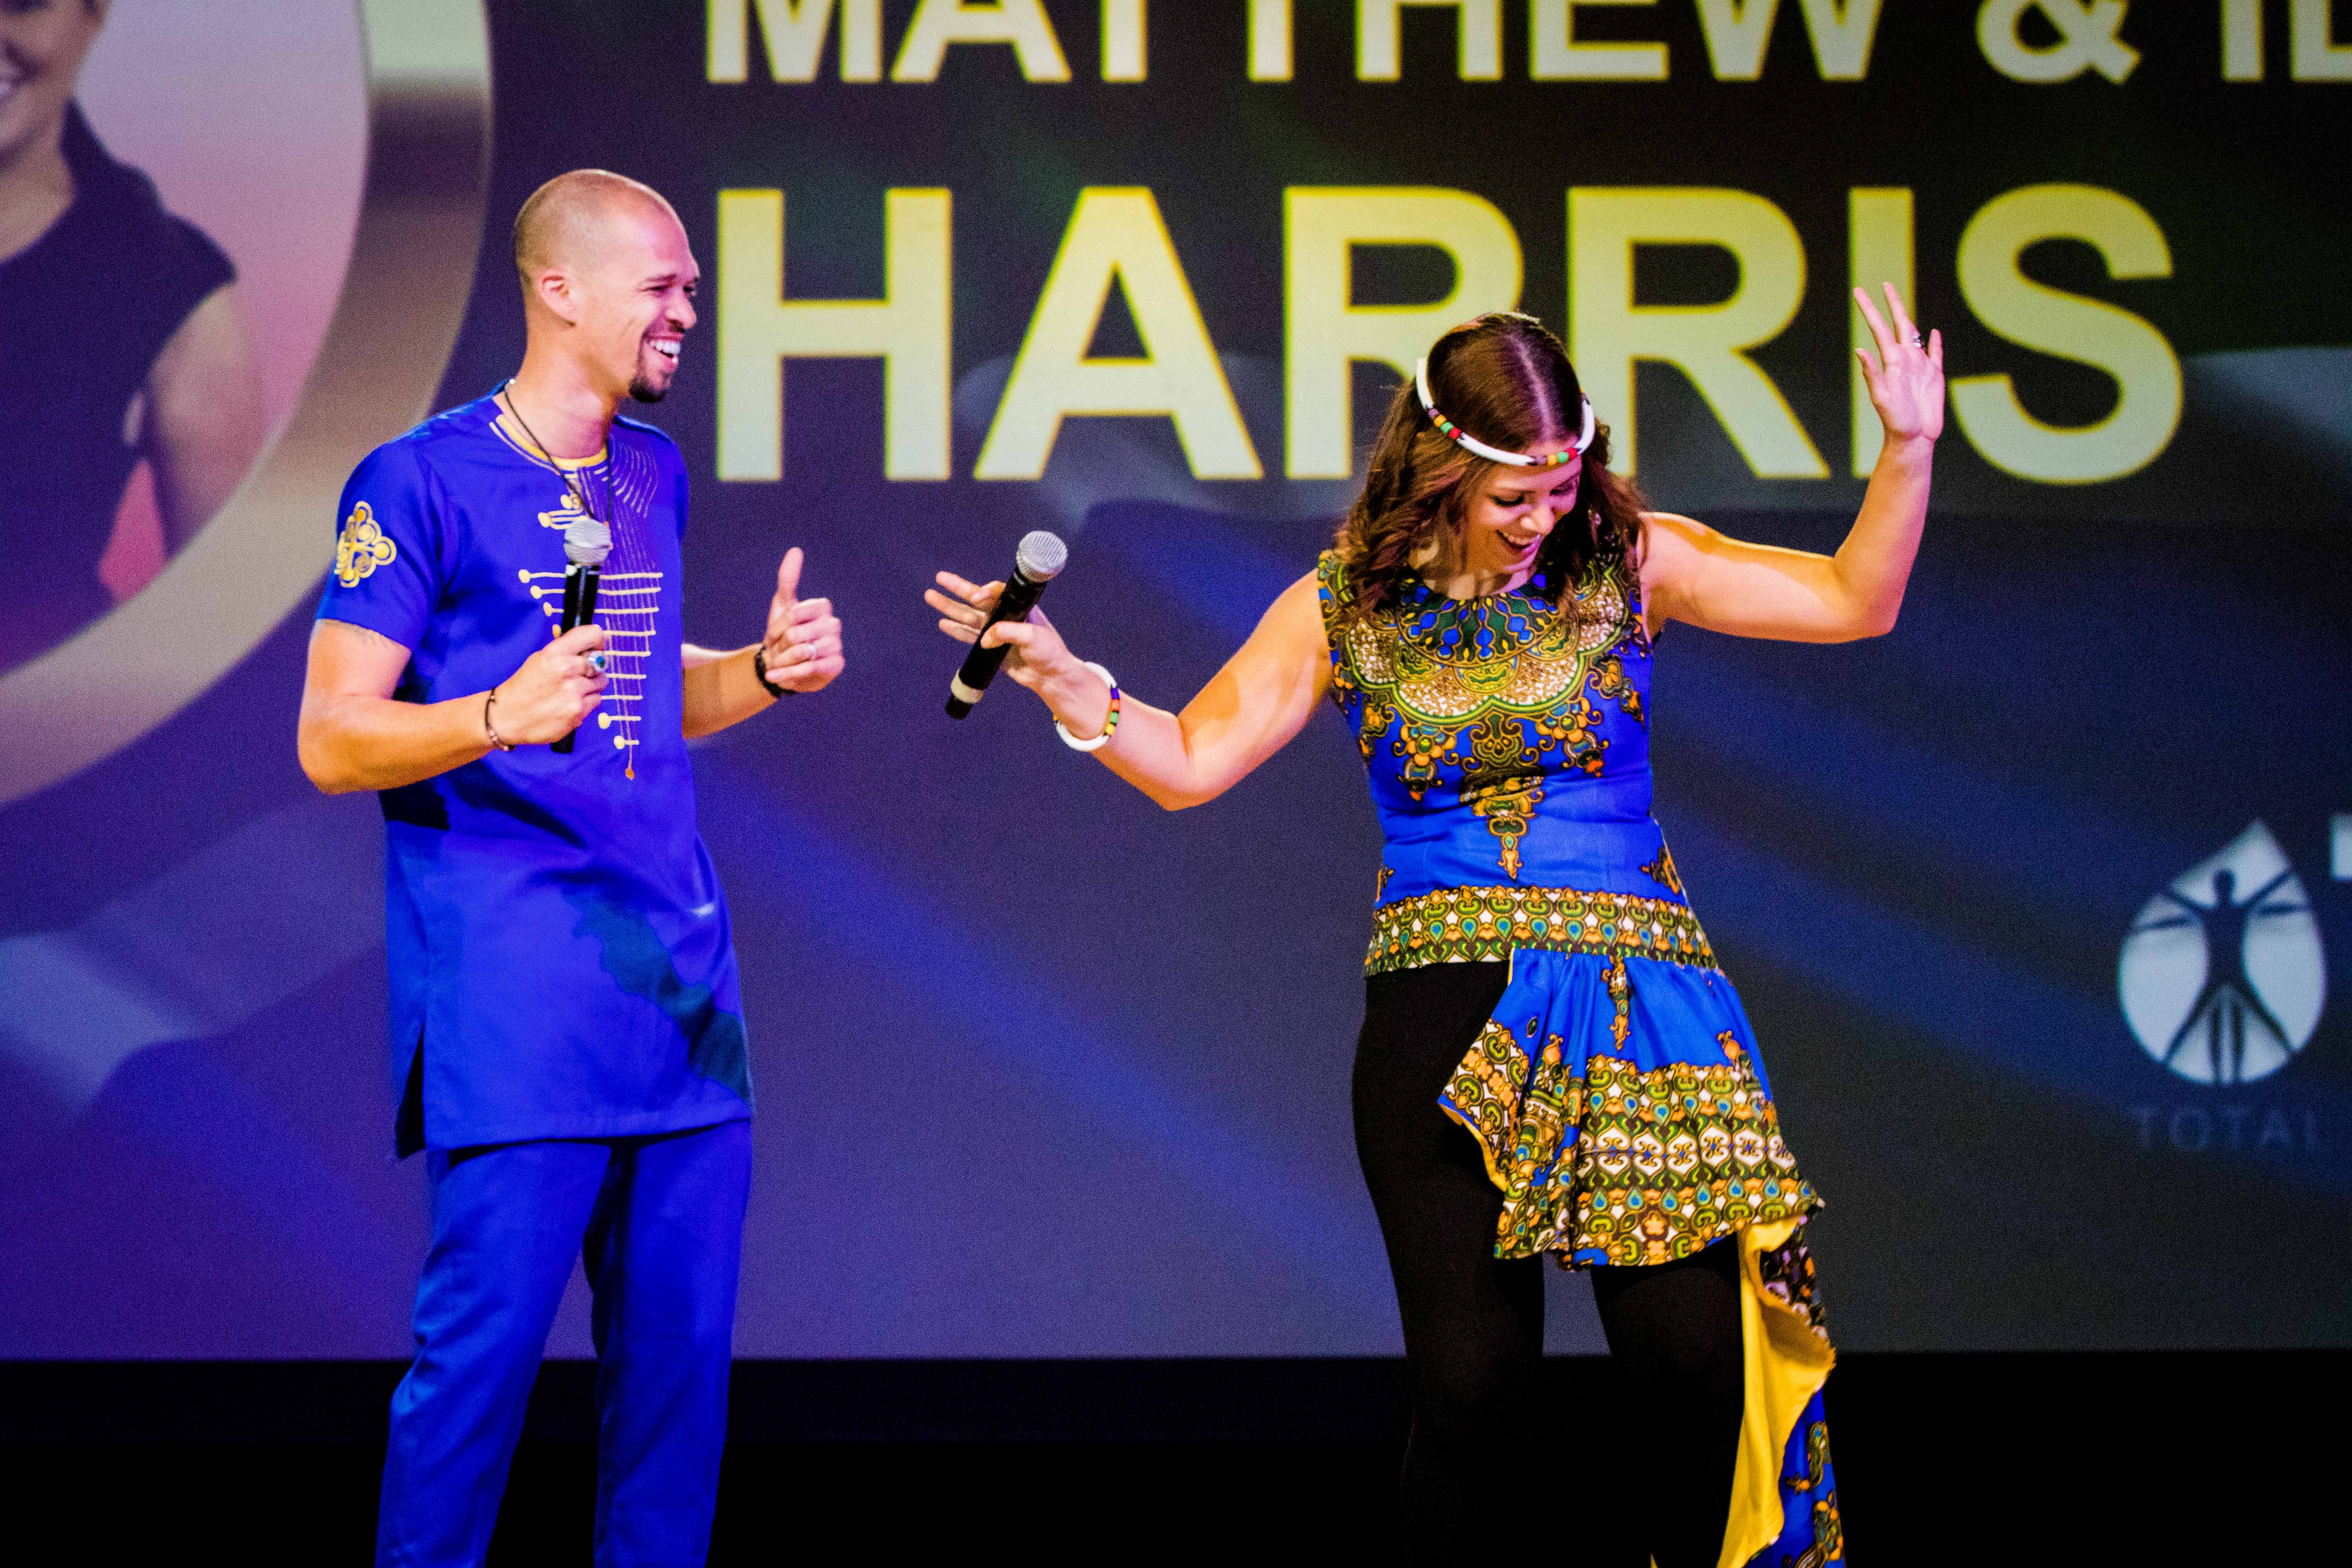 ilean and matthew harris on stage in South Africa   leadership   success   entrepreneurs